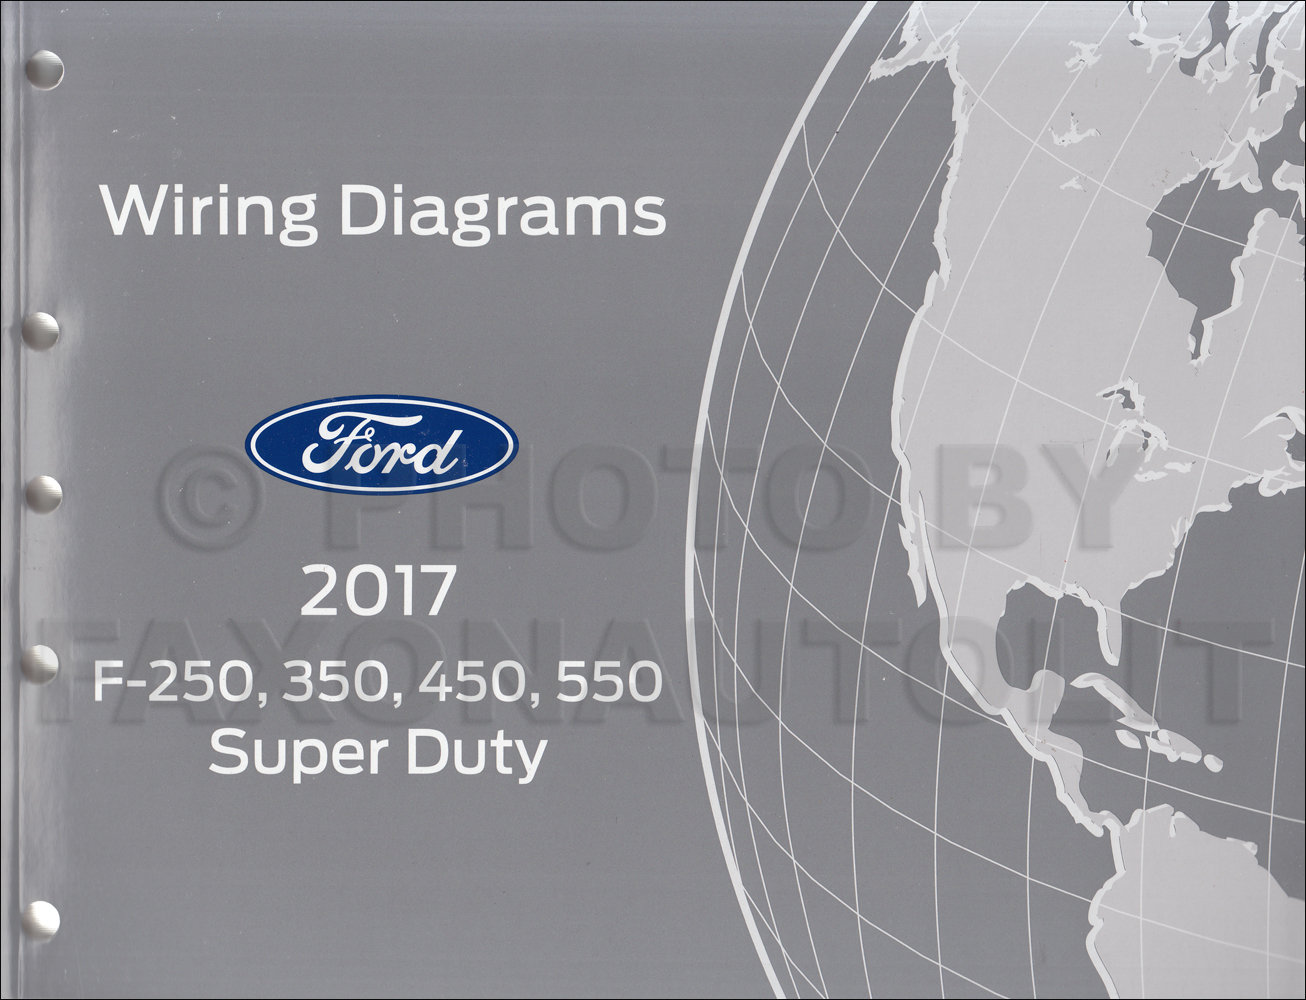 ford f550 wiring wiring diagram schematicsford f550 wiring wiring diagram home 2011 ford f550 pto wiring diagram ford f550 wiring